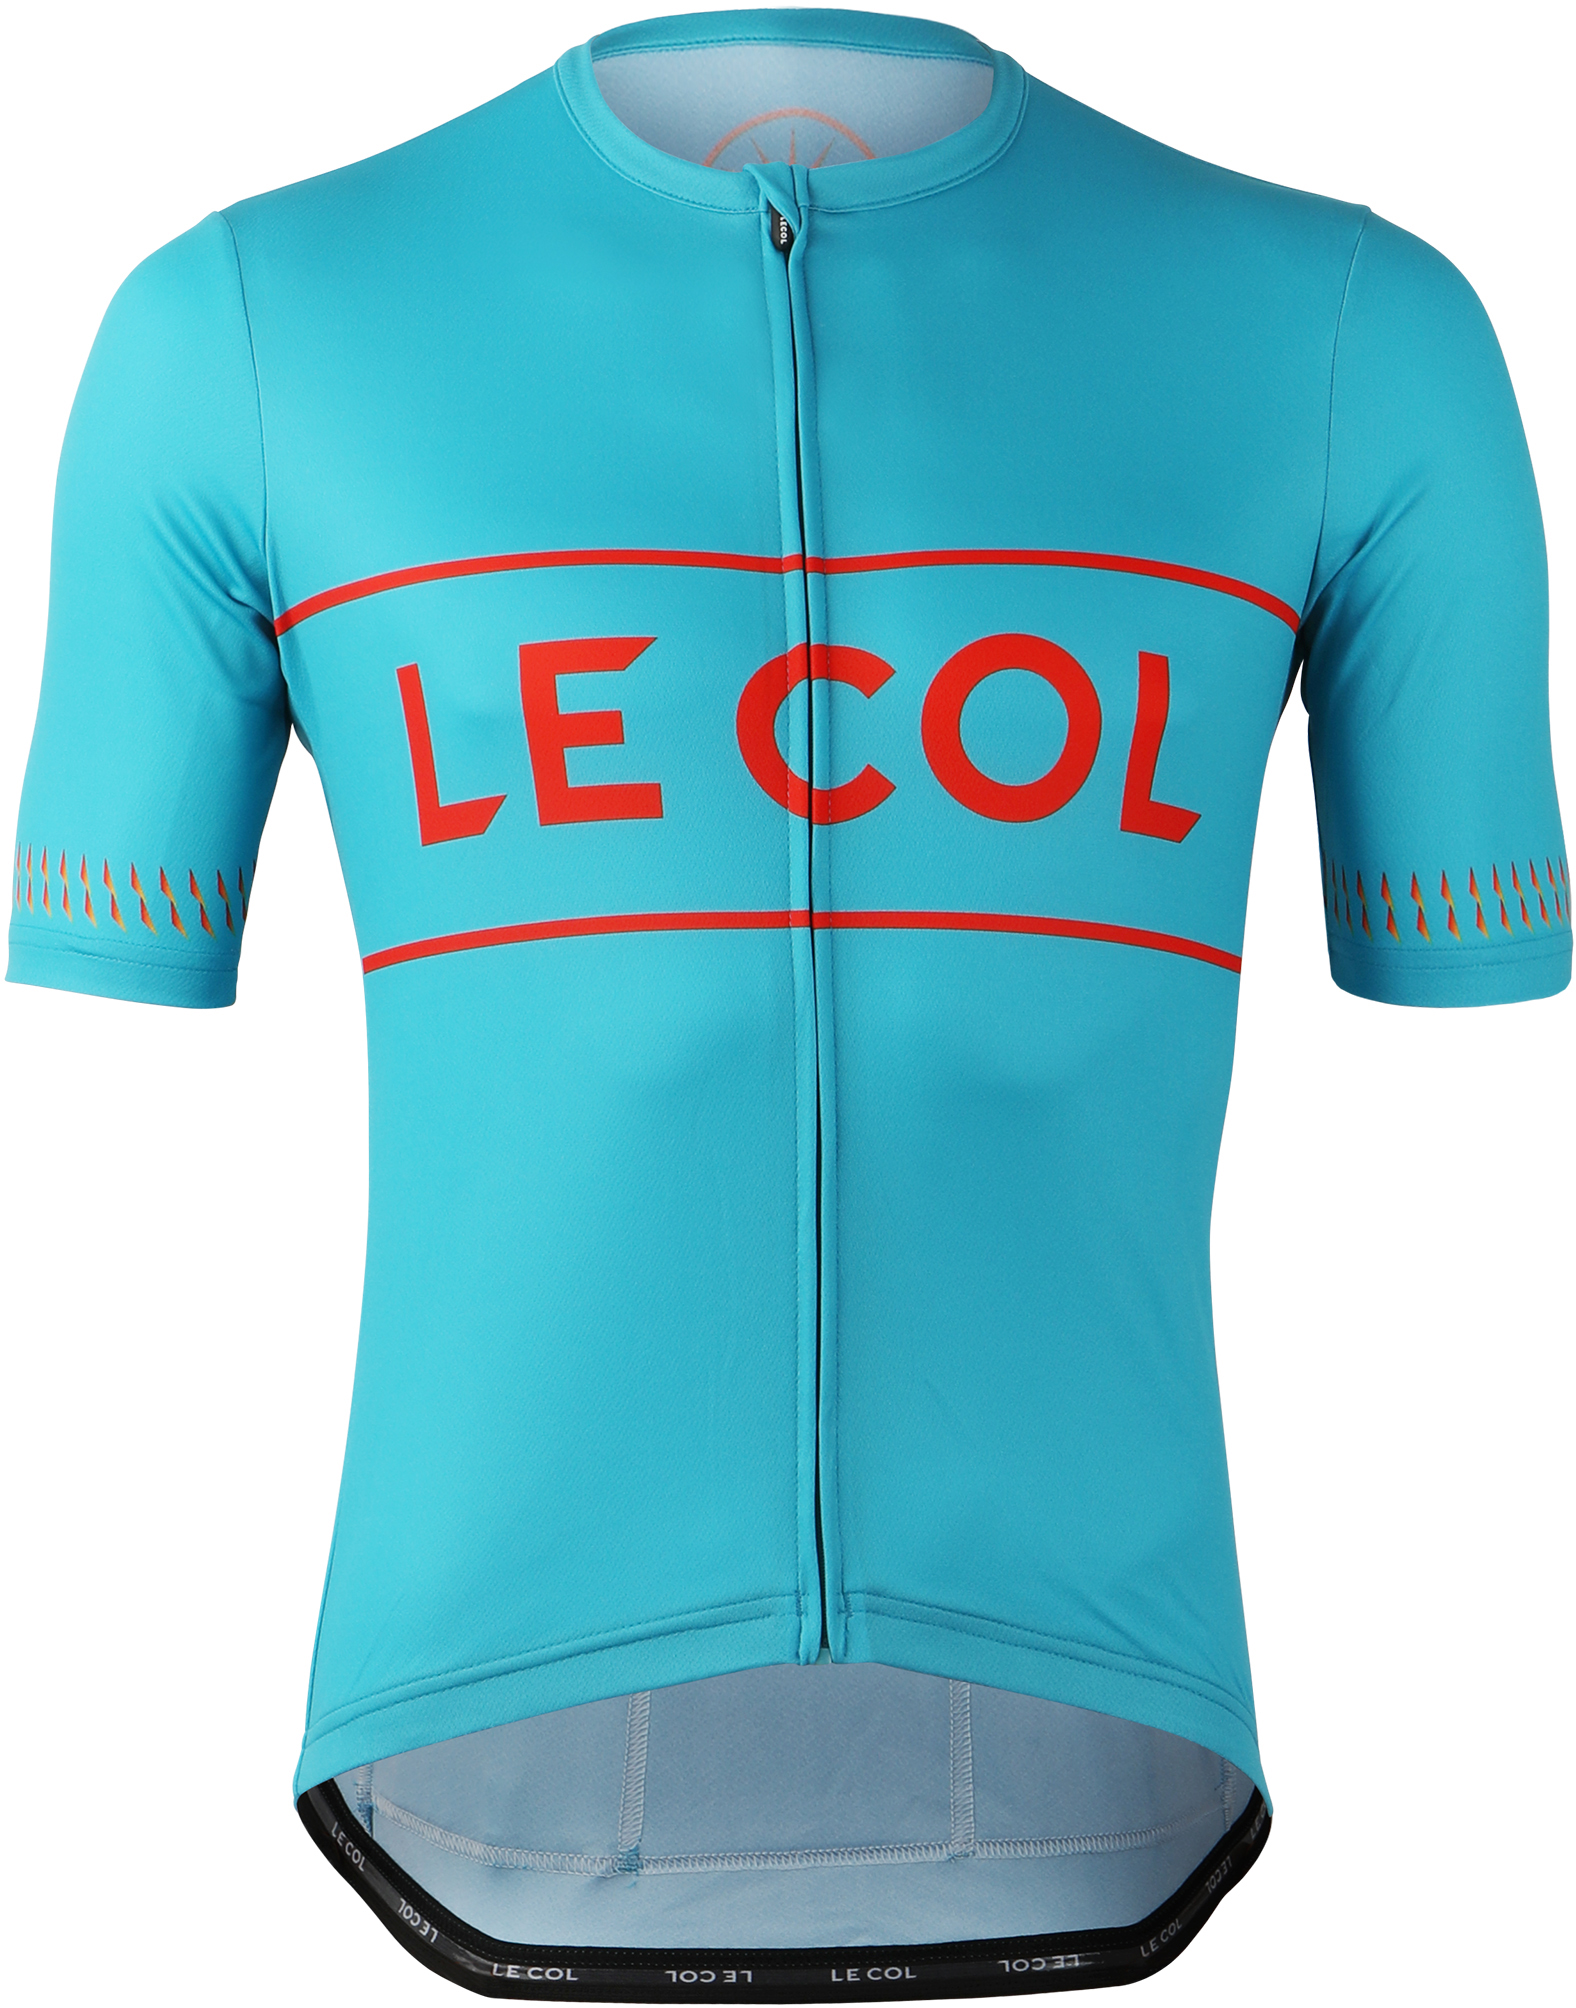 Le Col Exclusive Sport Jersey | Jerseys